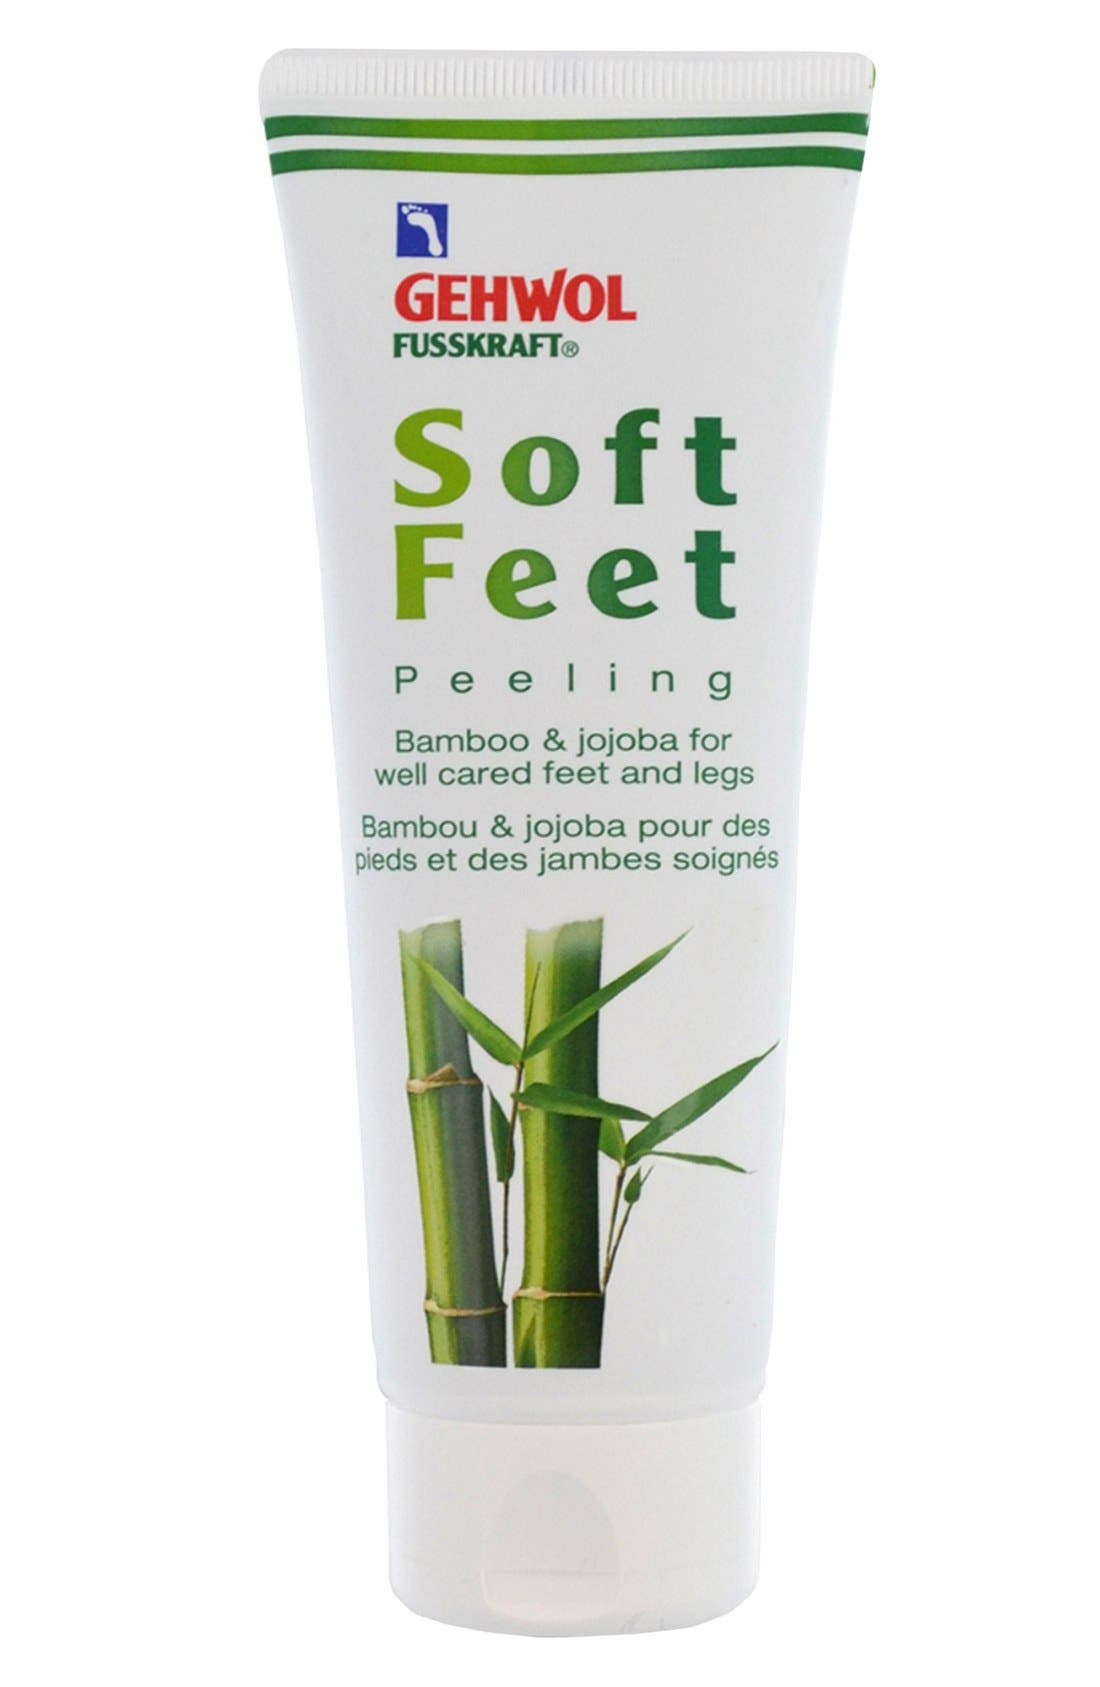 GEHWOL® FUSSKRAFT® 'Soft Feet' Scrub